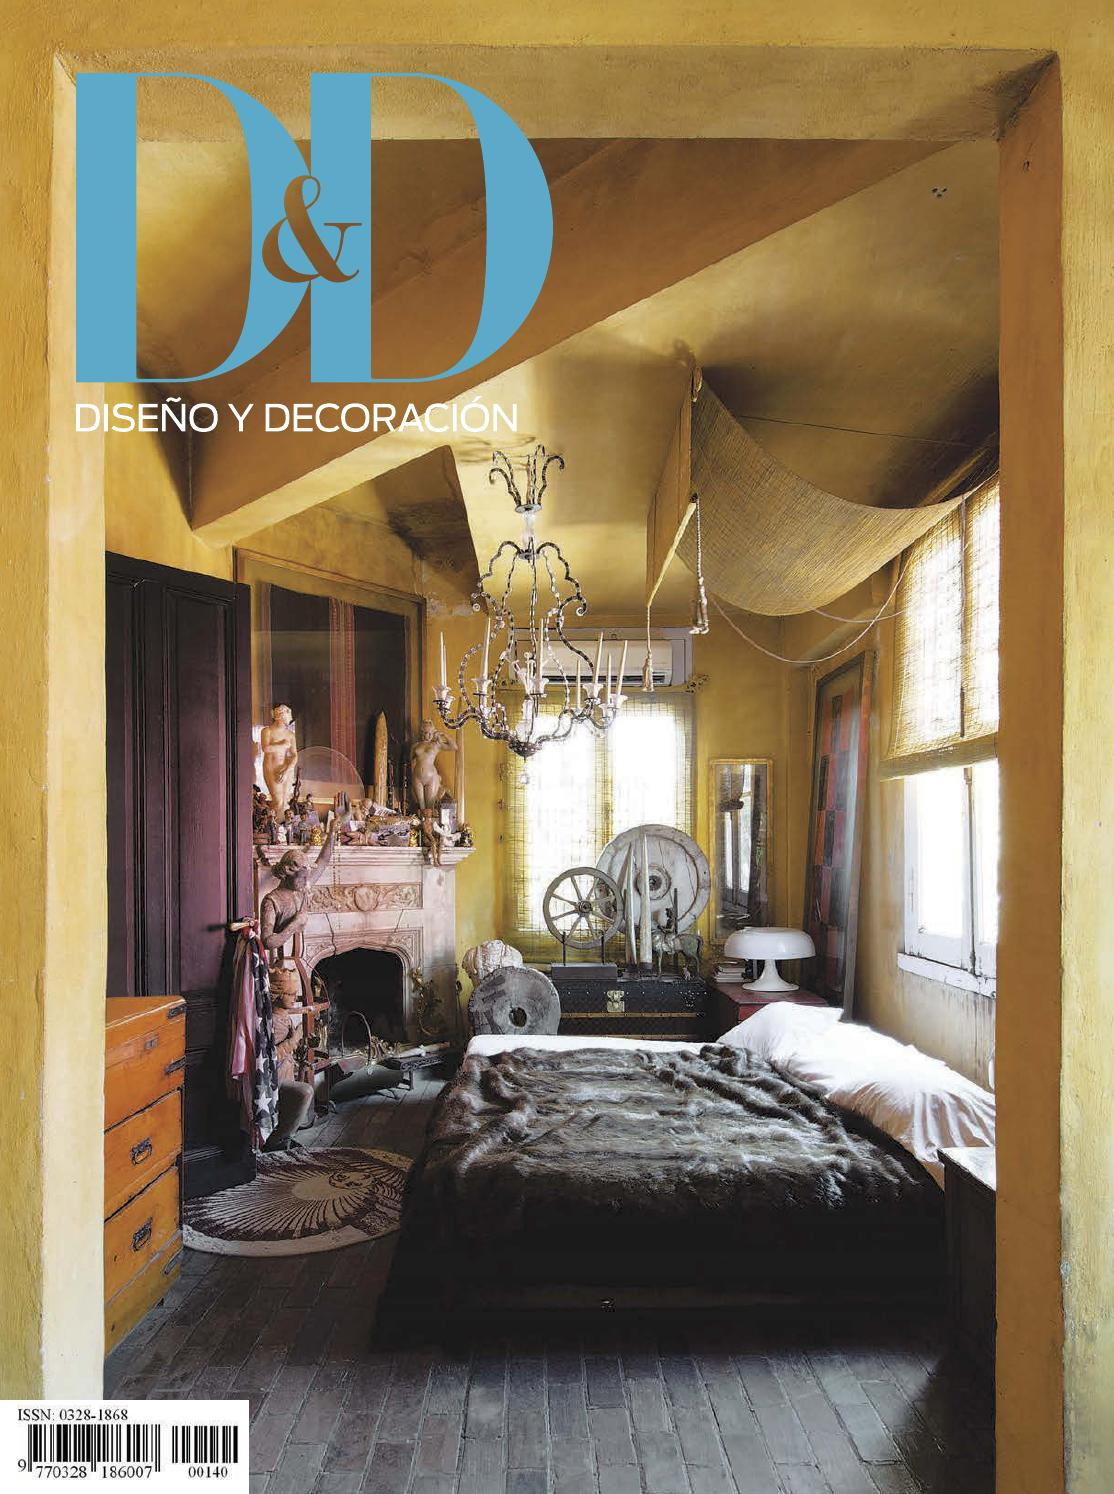 D D Dise O Y Decoraci N 140 Arquitectura Turismo Fotograf A  # Muebles Bizantinos